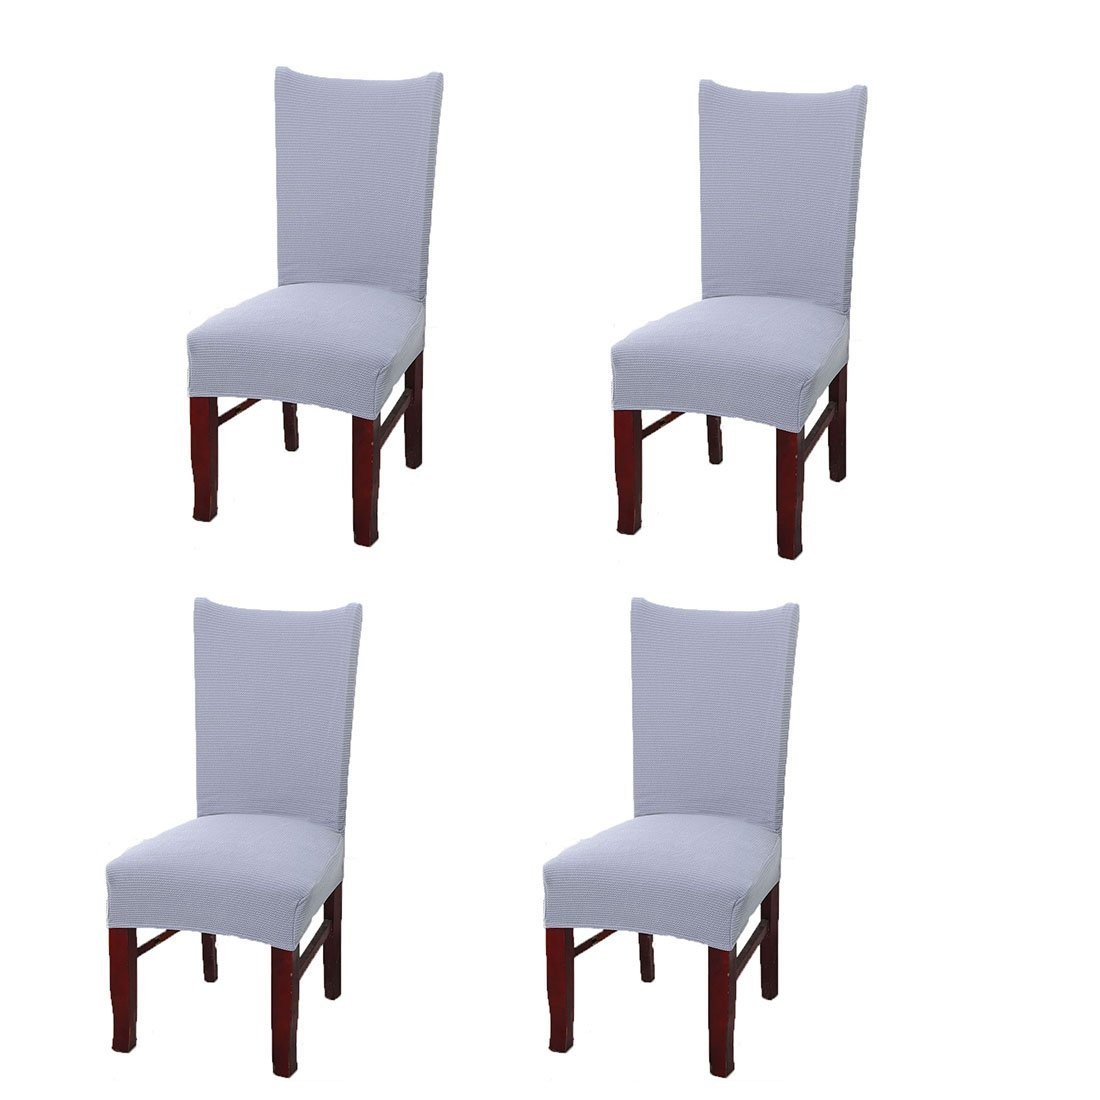 FamyFirst Dining Room Chair Covers Set of 4, Jacquard Knit Spandex Fabric Stretch Elastic Removable Washable Chair Seat Protector Slipcovers for Home Party Hotel Wedding Ceremony (Light Gray)